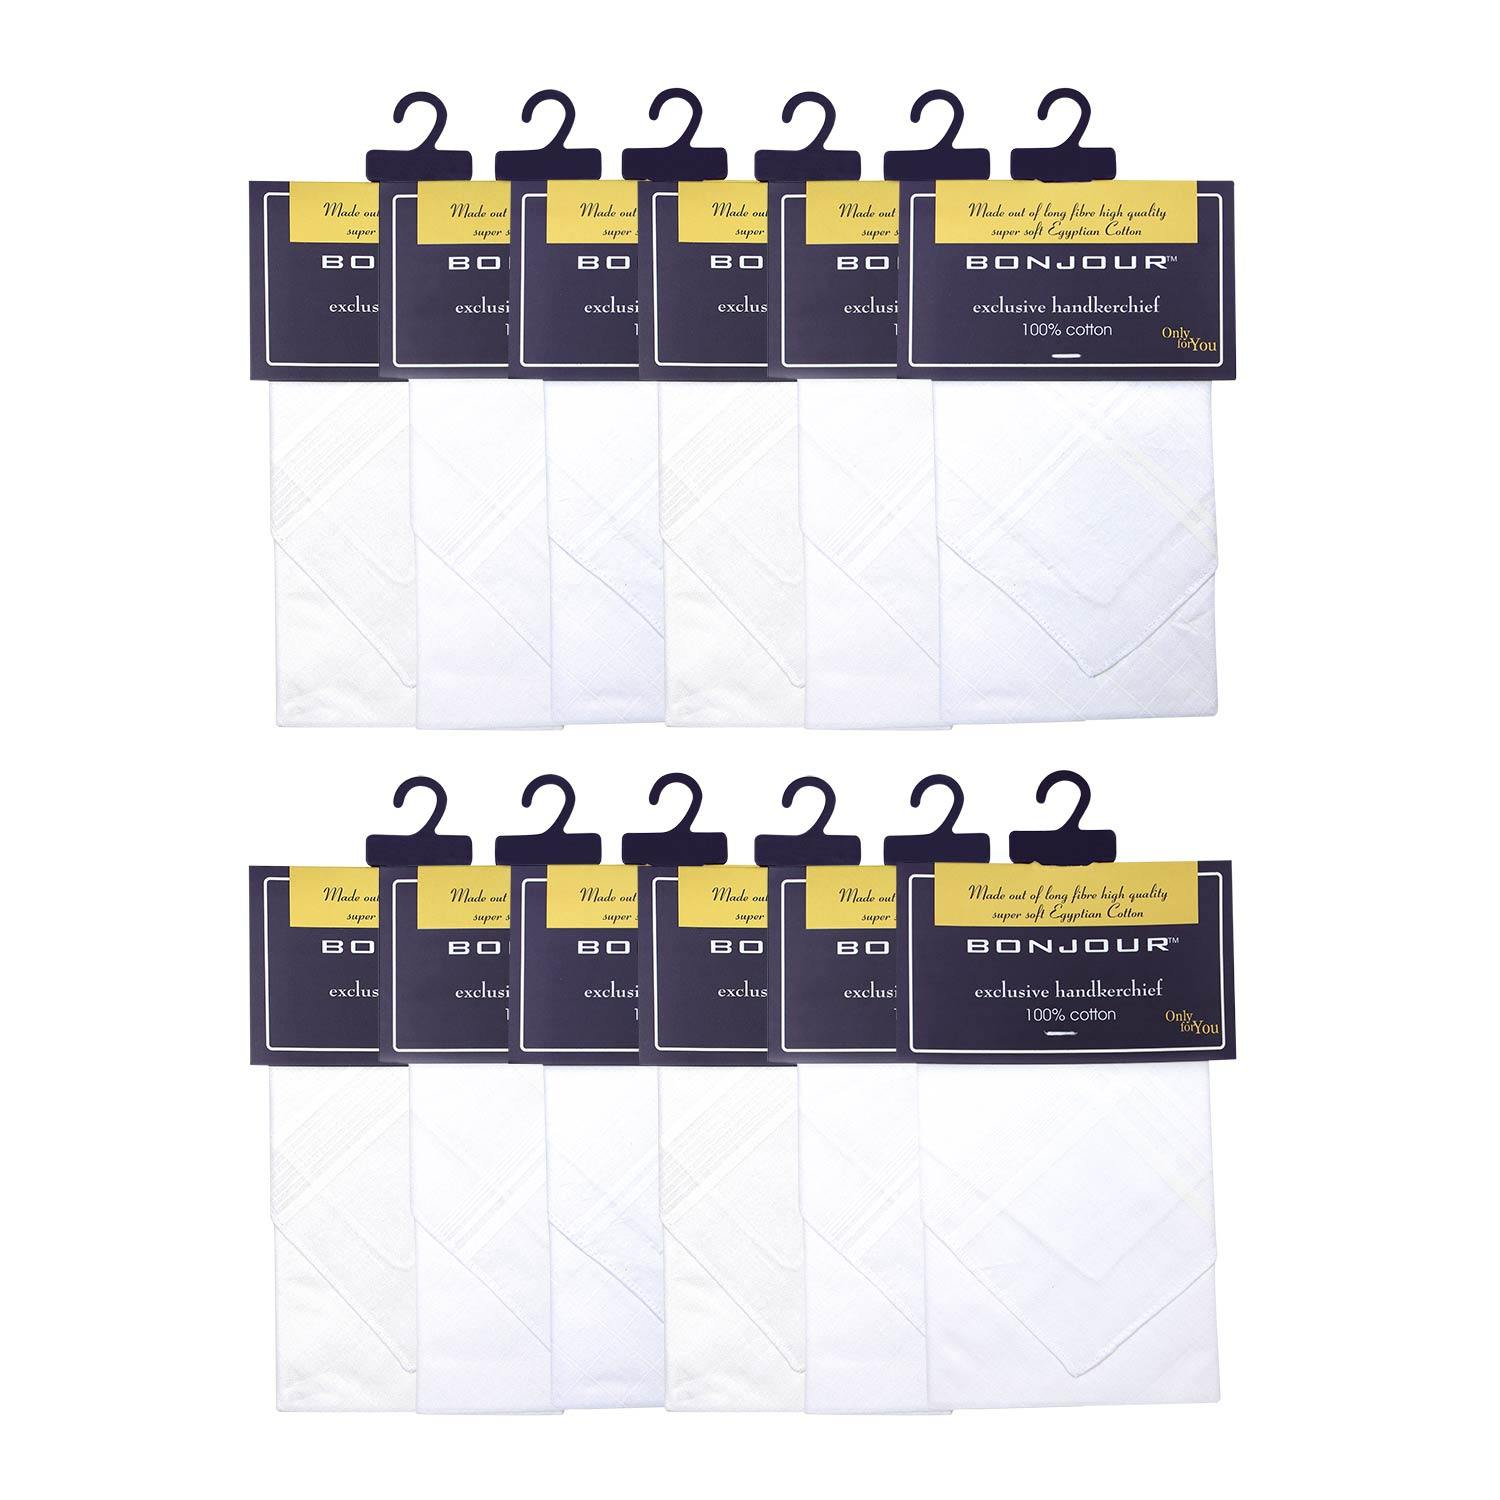 Men's Formal Cotton Handkerchief in White -Pack of 12